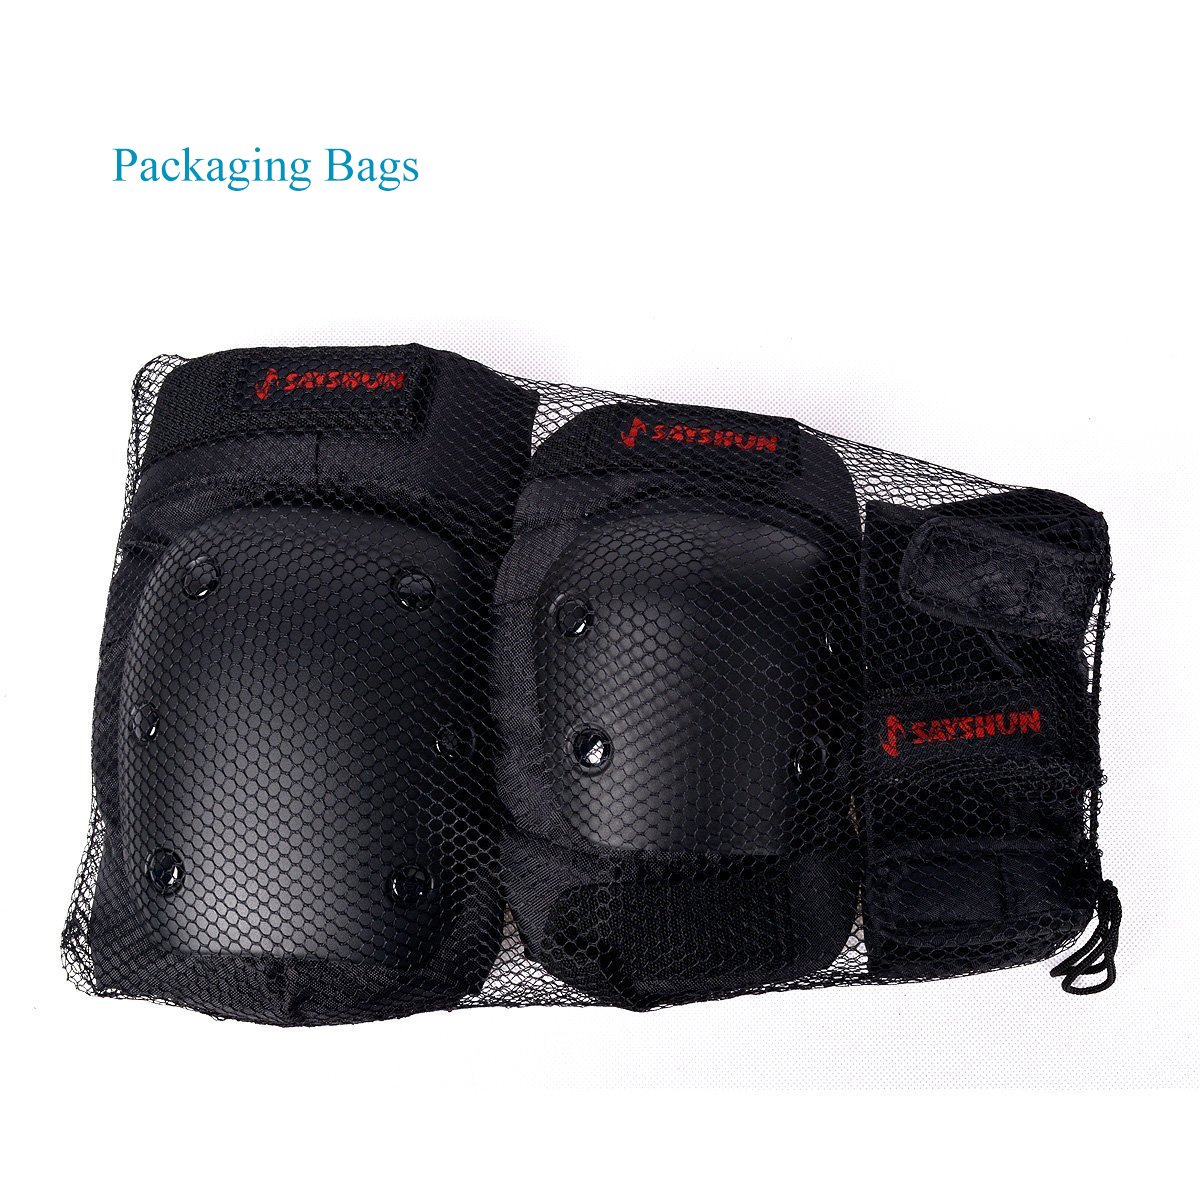 SAYSHUN Protective Gear Sets for Skateboard Cycling Roller Skating Outdoor Sport Blading Knee Elbow Wrist Safety Gear Pad Guard for Youth and Adult (Large)